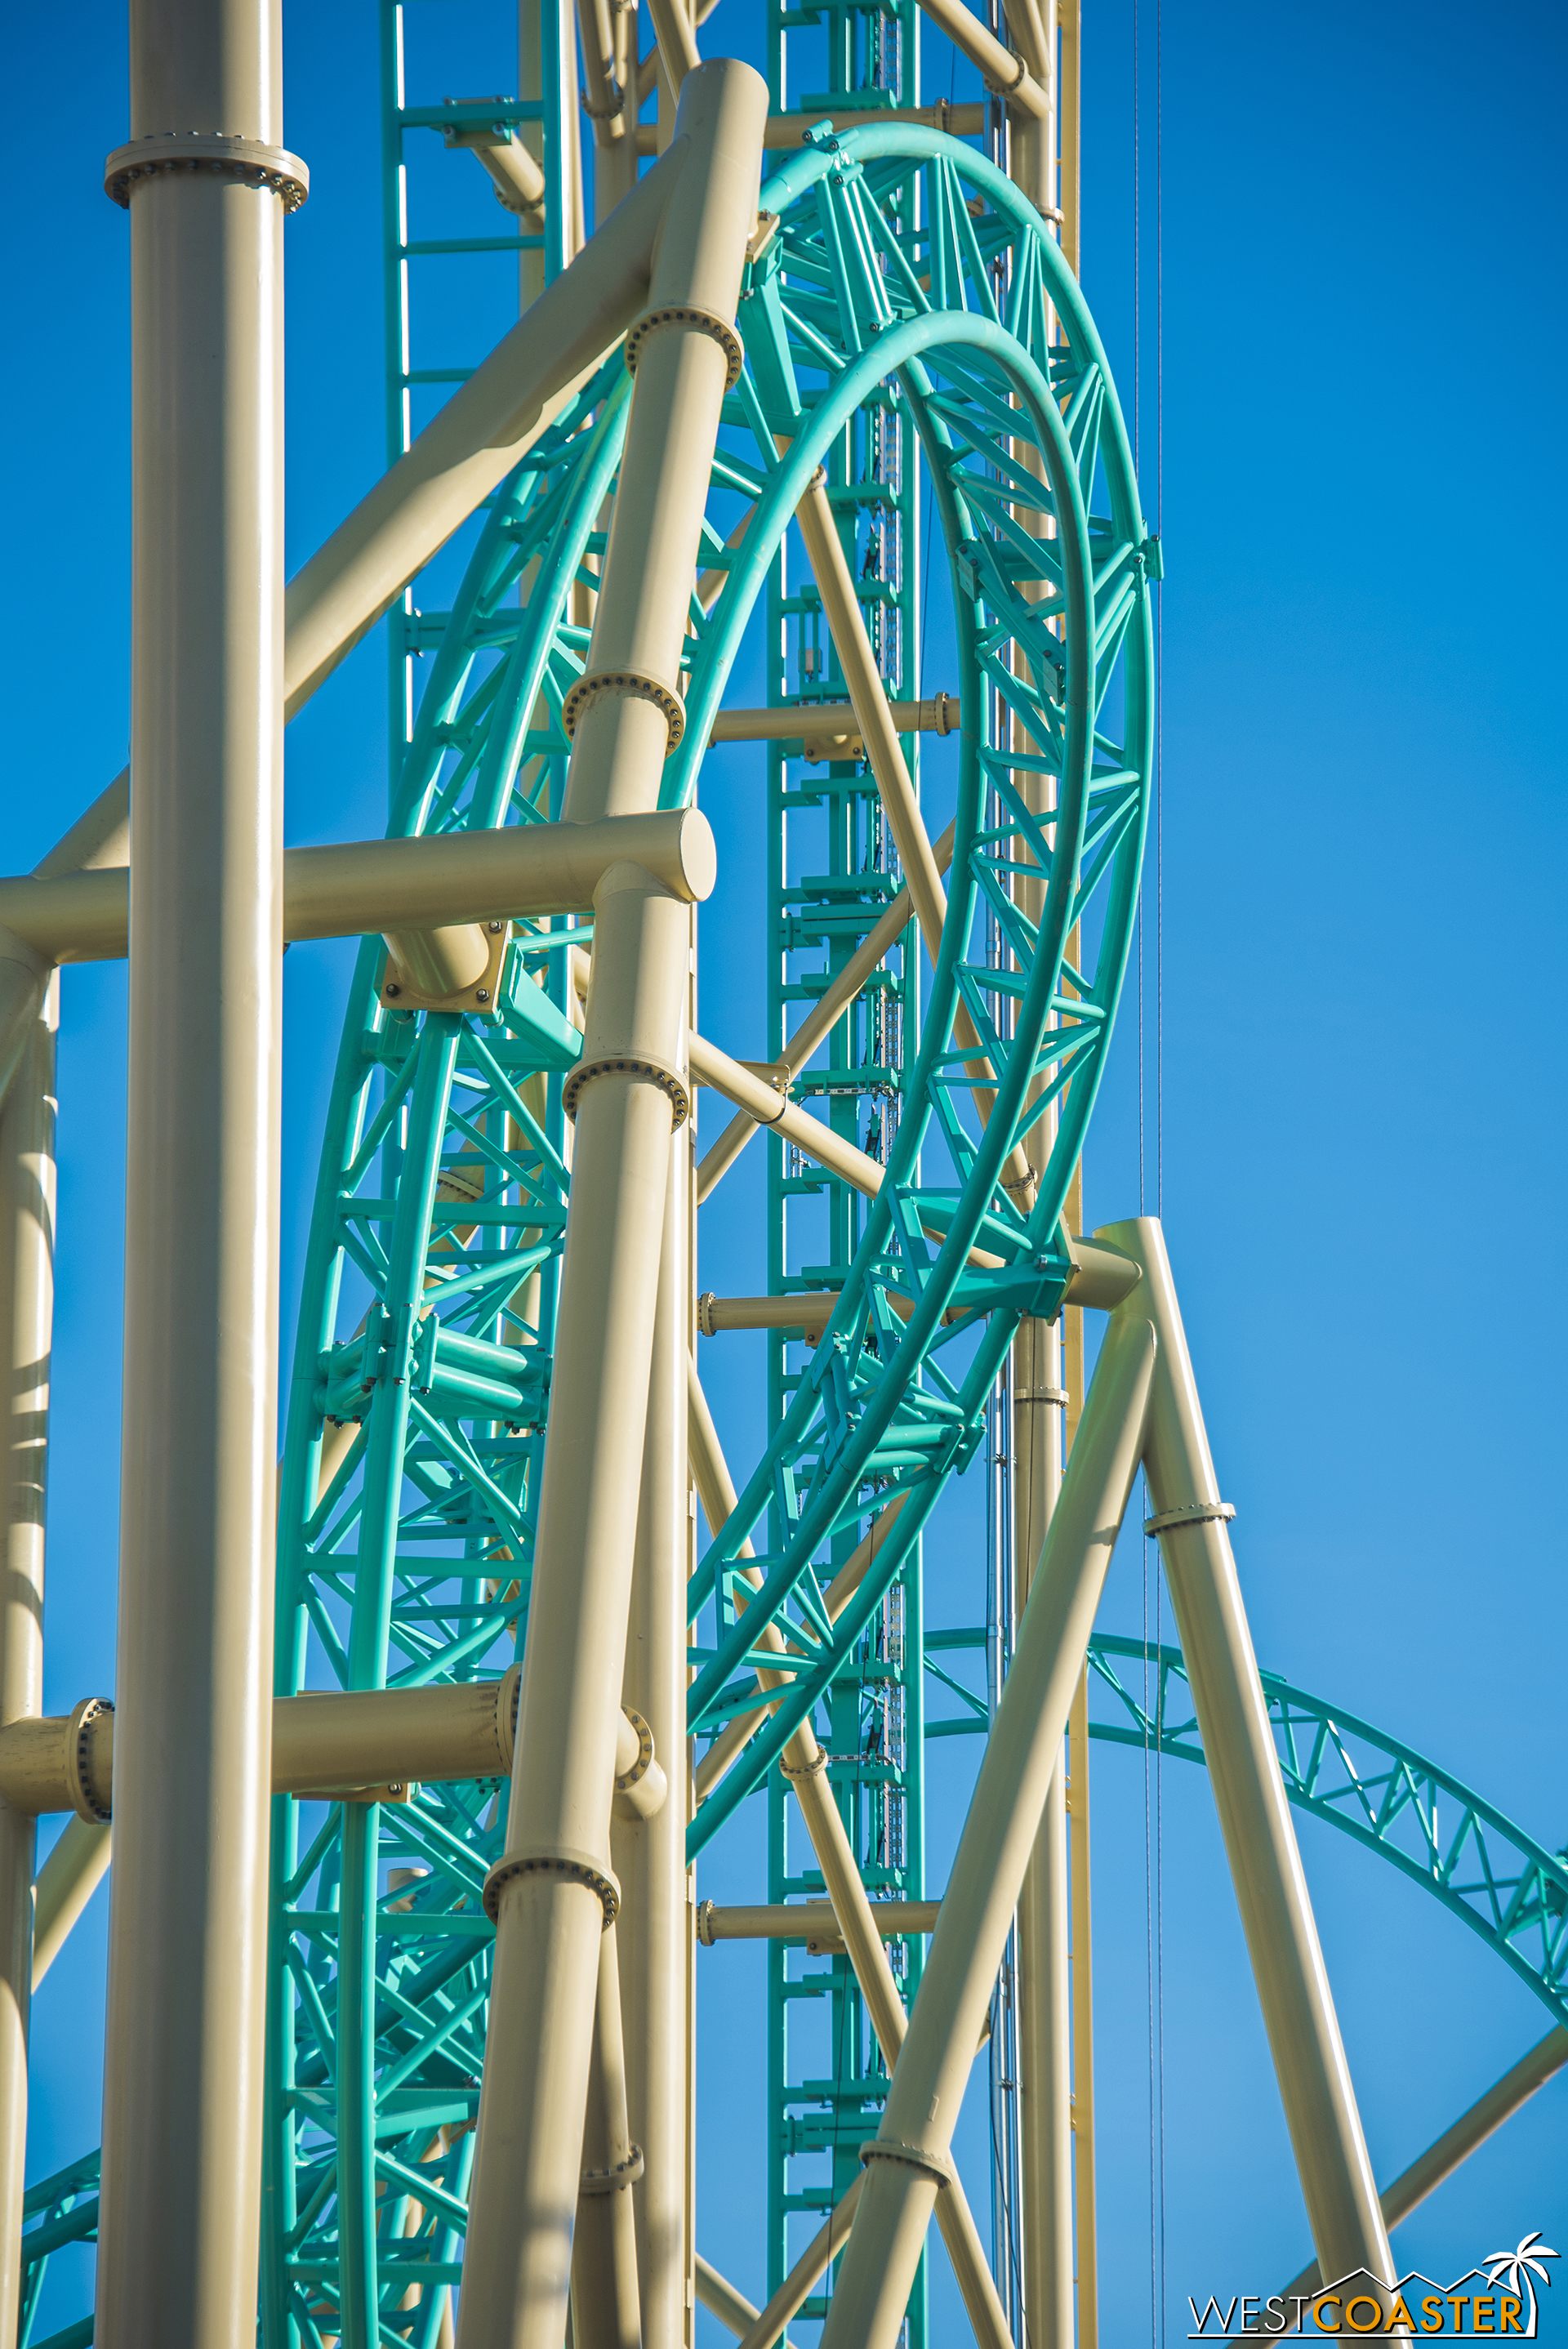 There will be a lot of great angles for close-up roller coaster shots with HangTime!